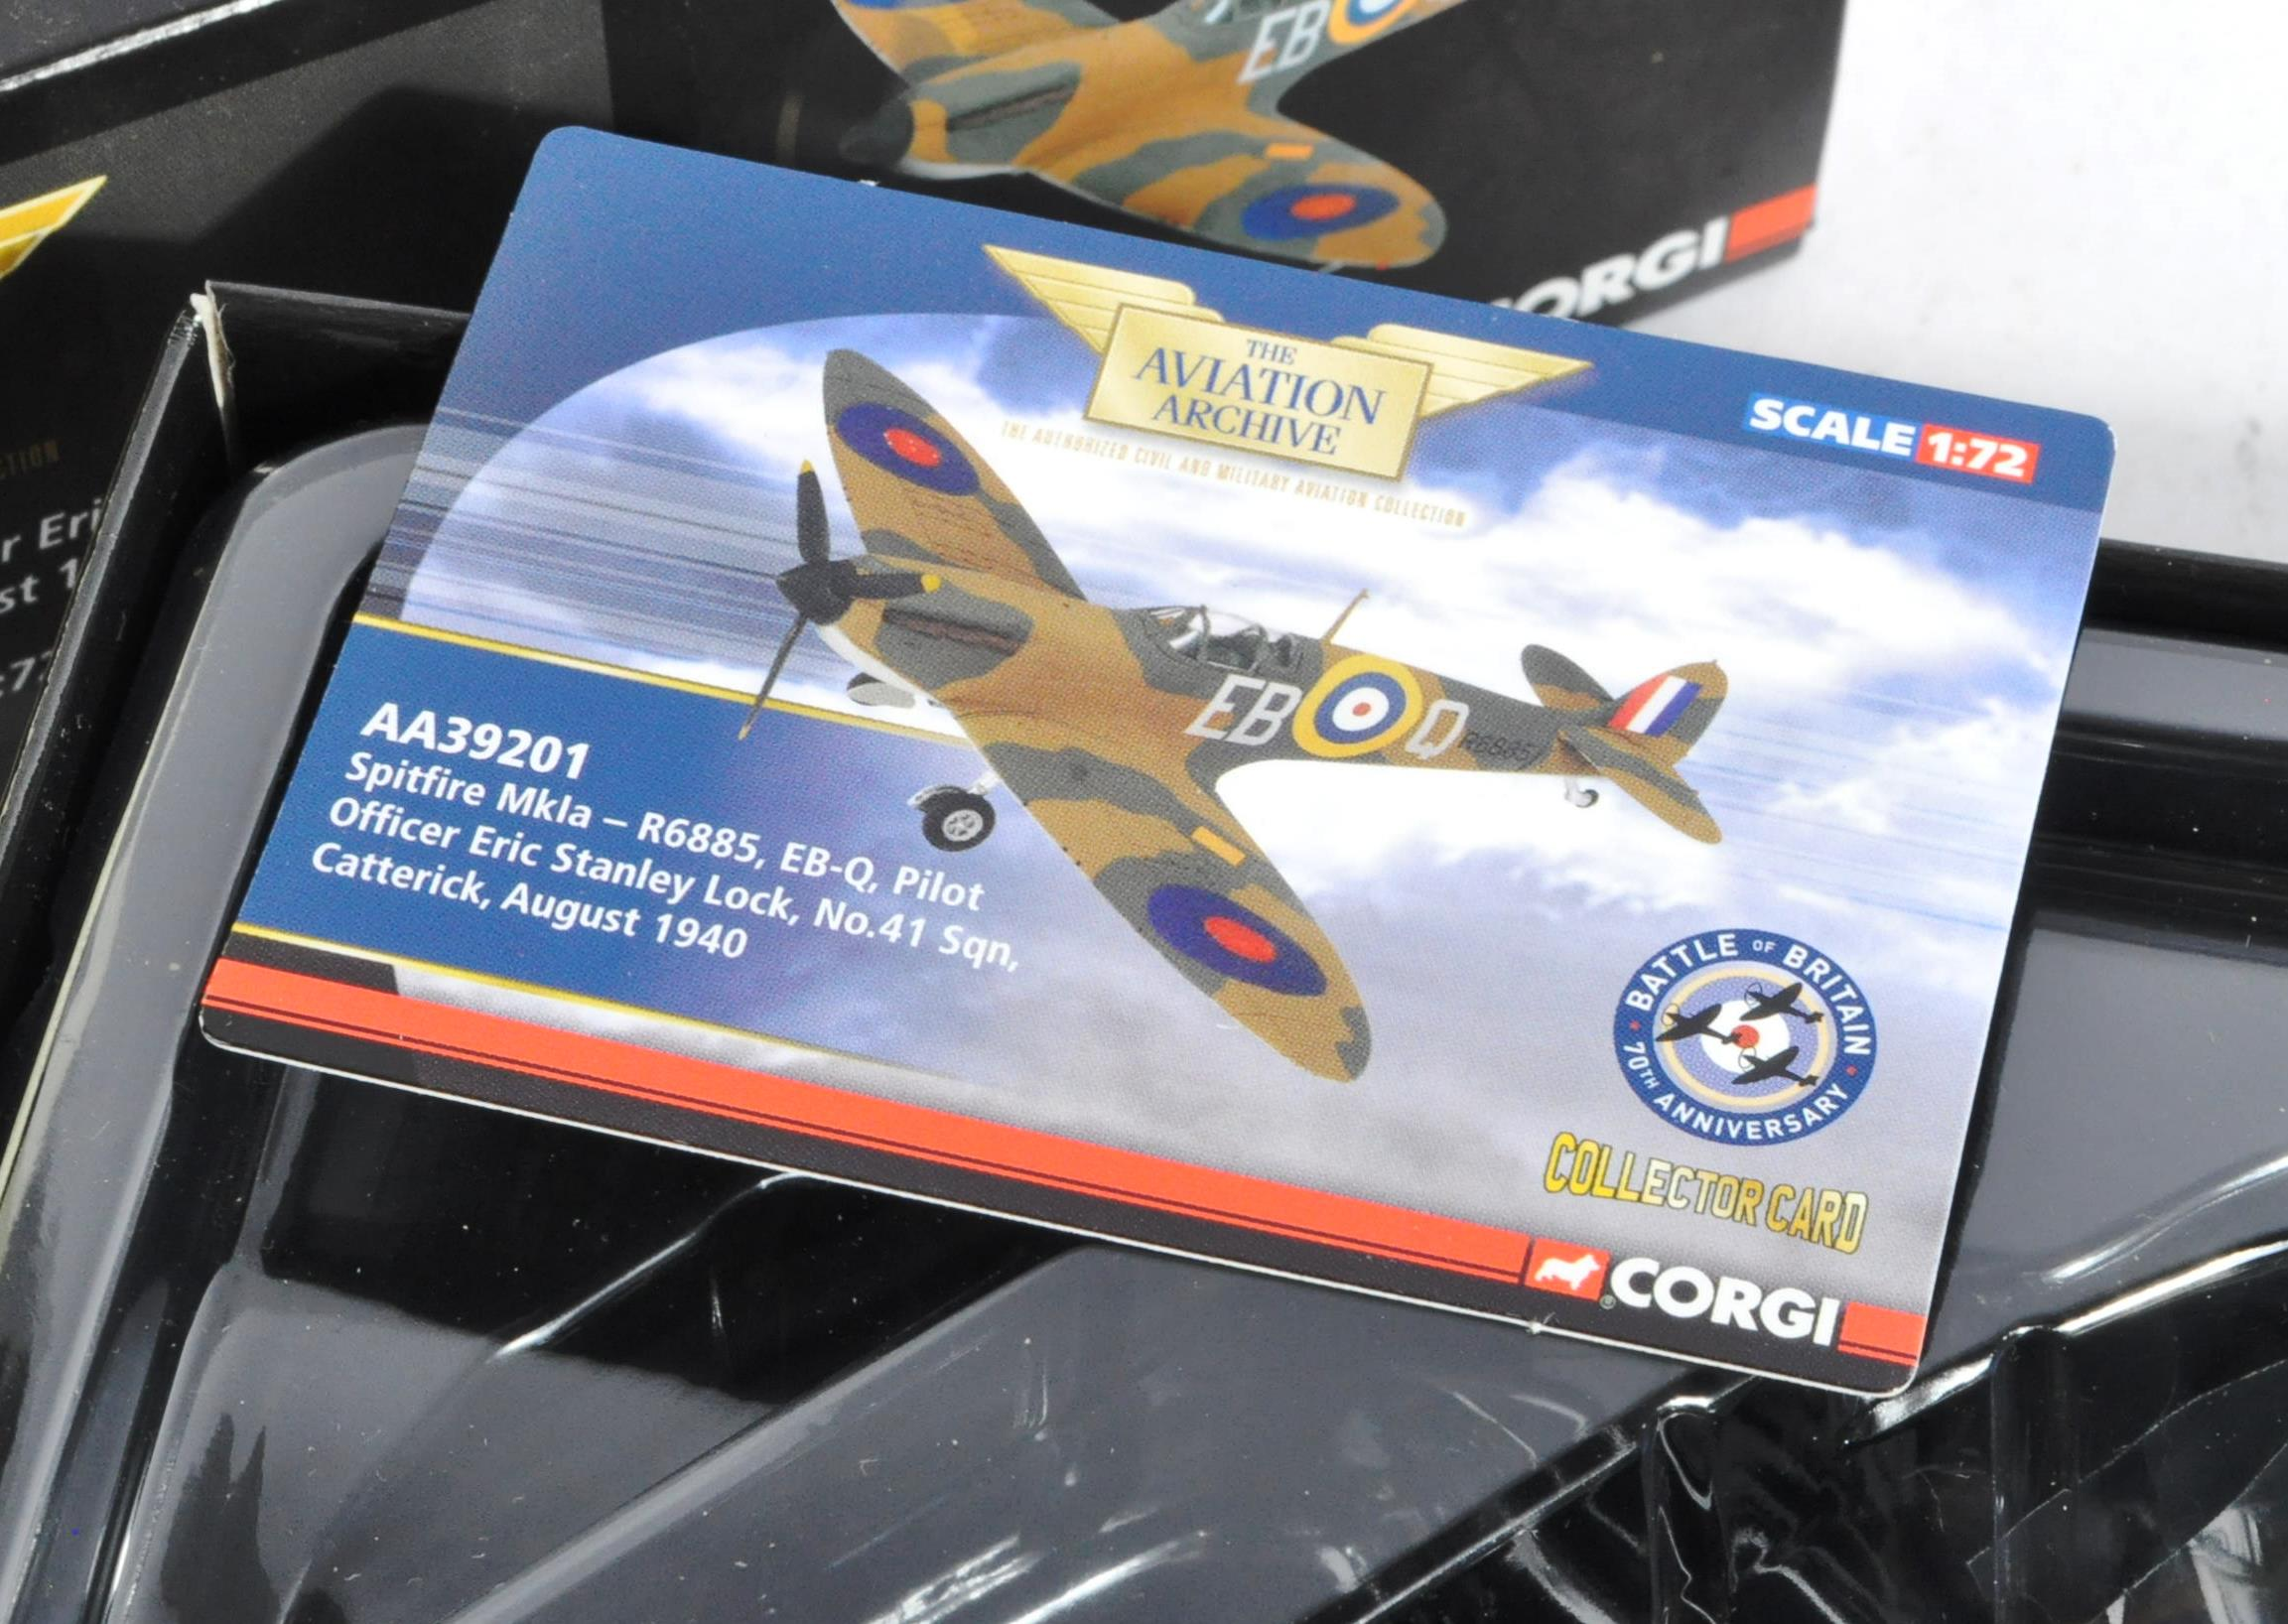 CORGI AVIATION ARCHIVE - TWO BOXED 1/72 SCALE LIMITED EDITION MODELS - Image 2 of 5